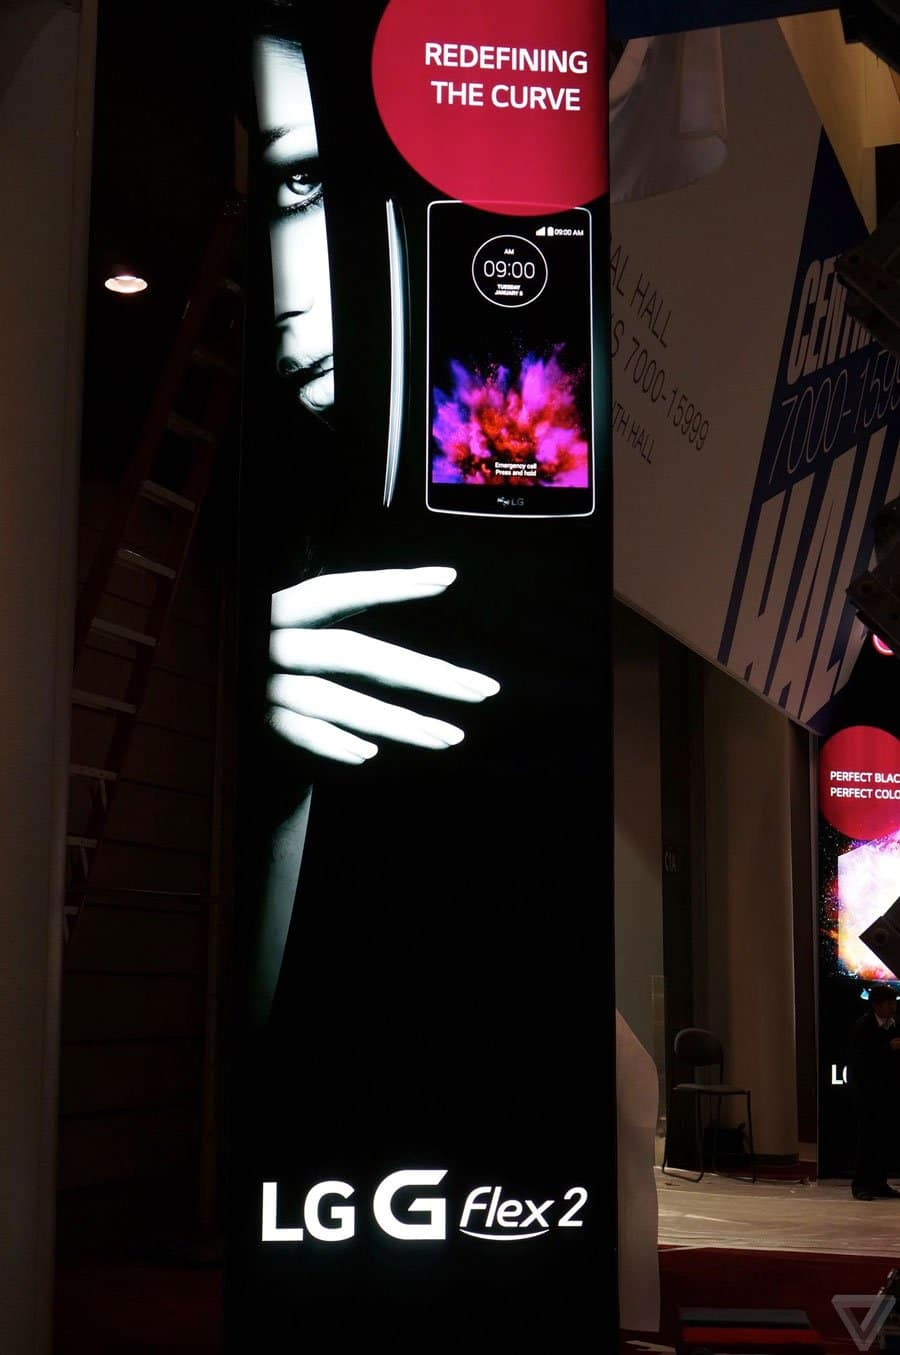 lg g flex 2 smartphone poster release ces 2015